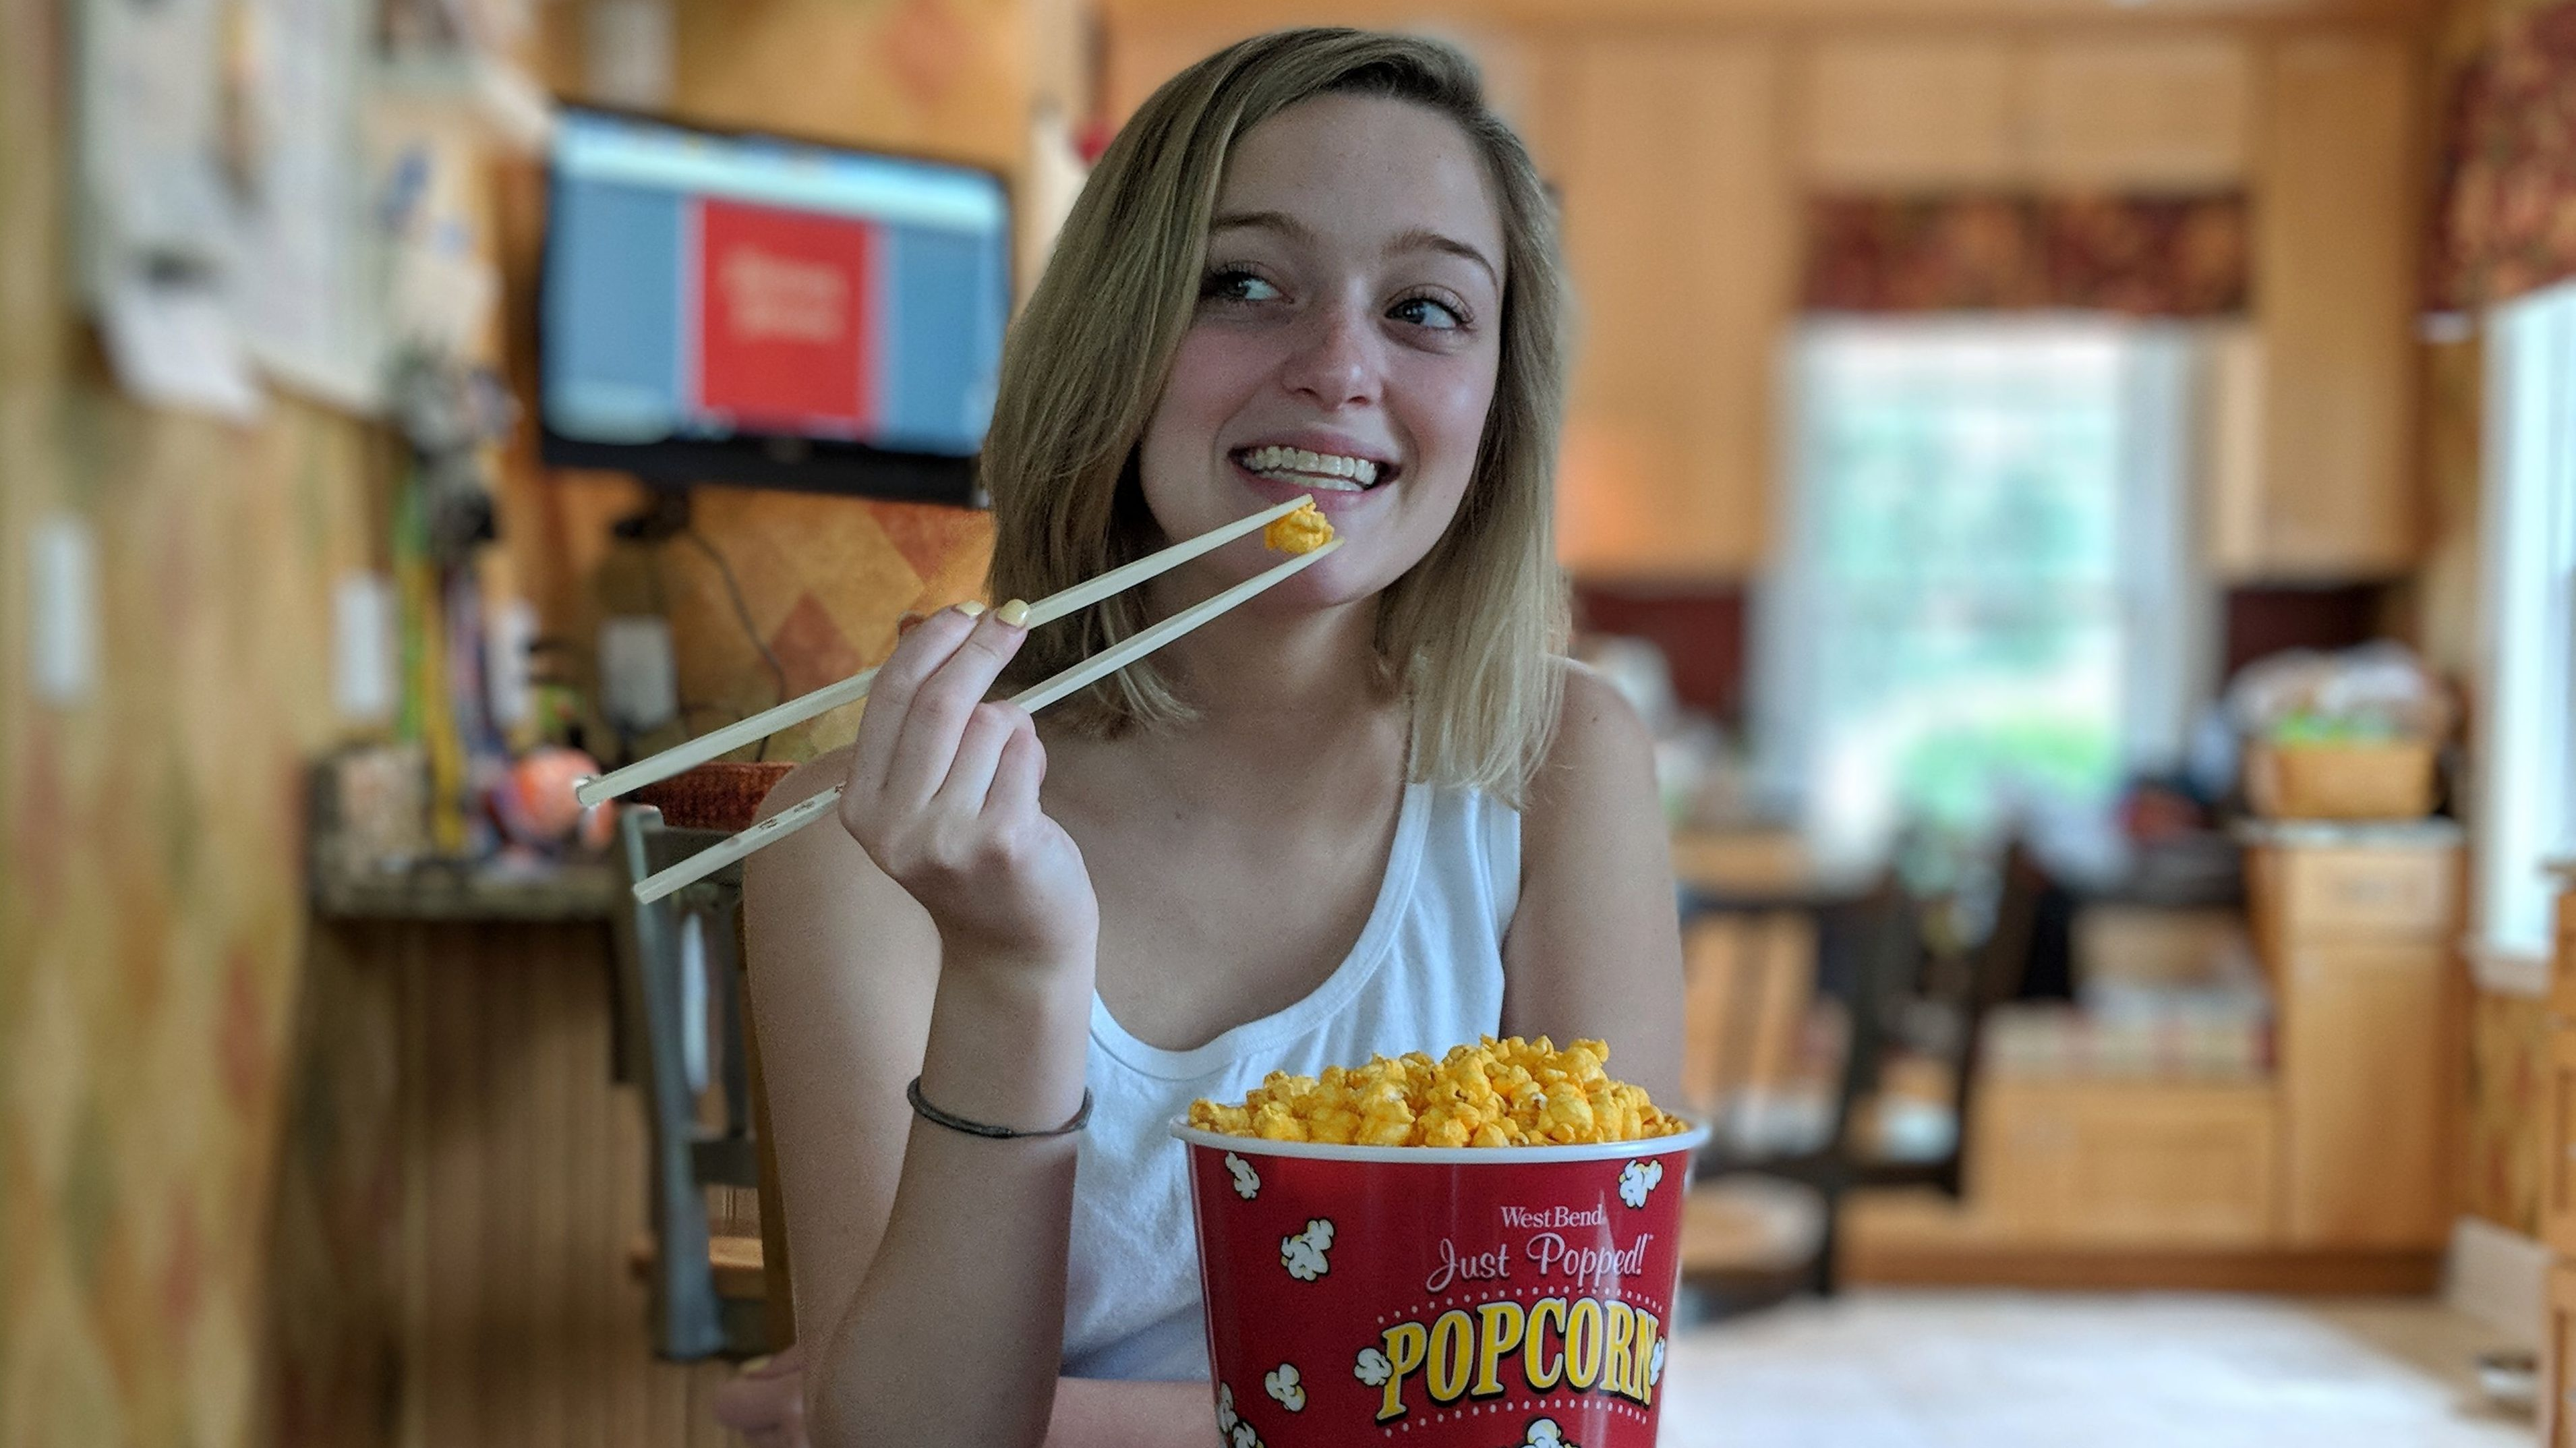 A woman eating popcorn with chopsticks